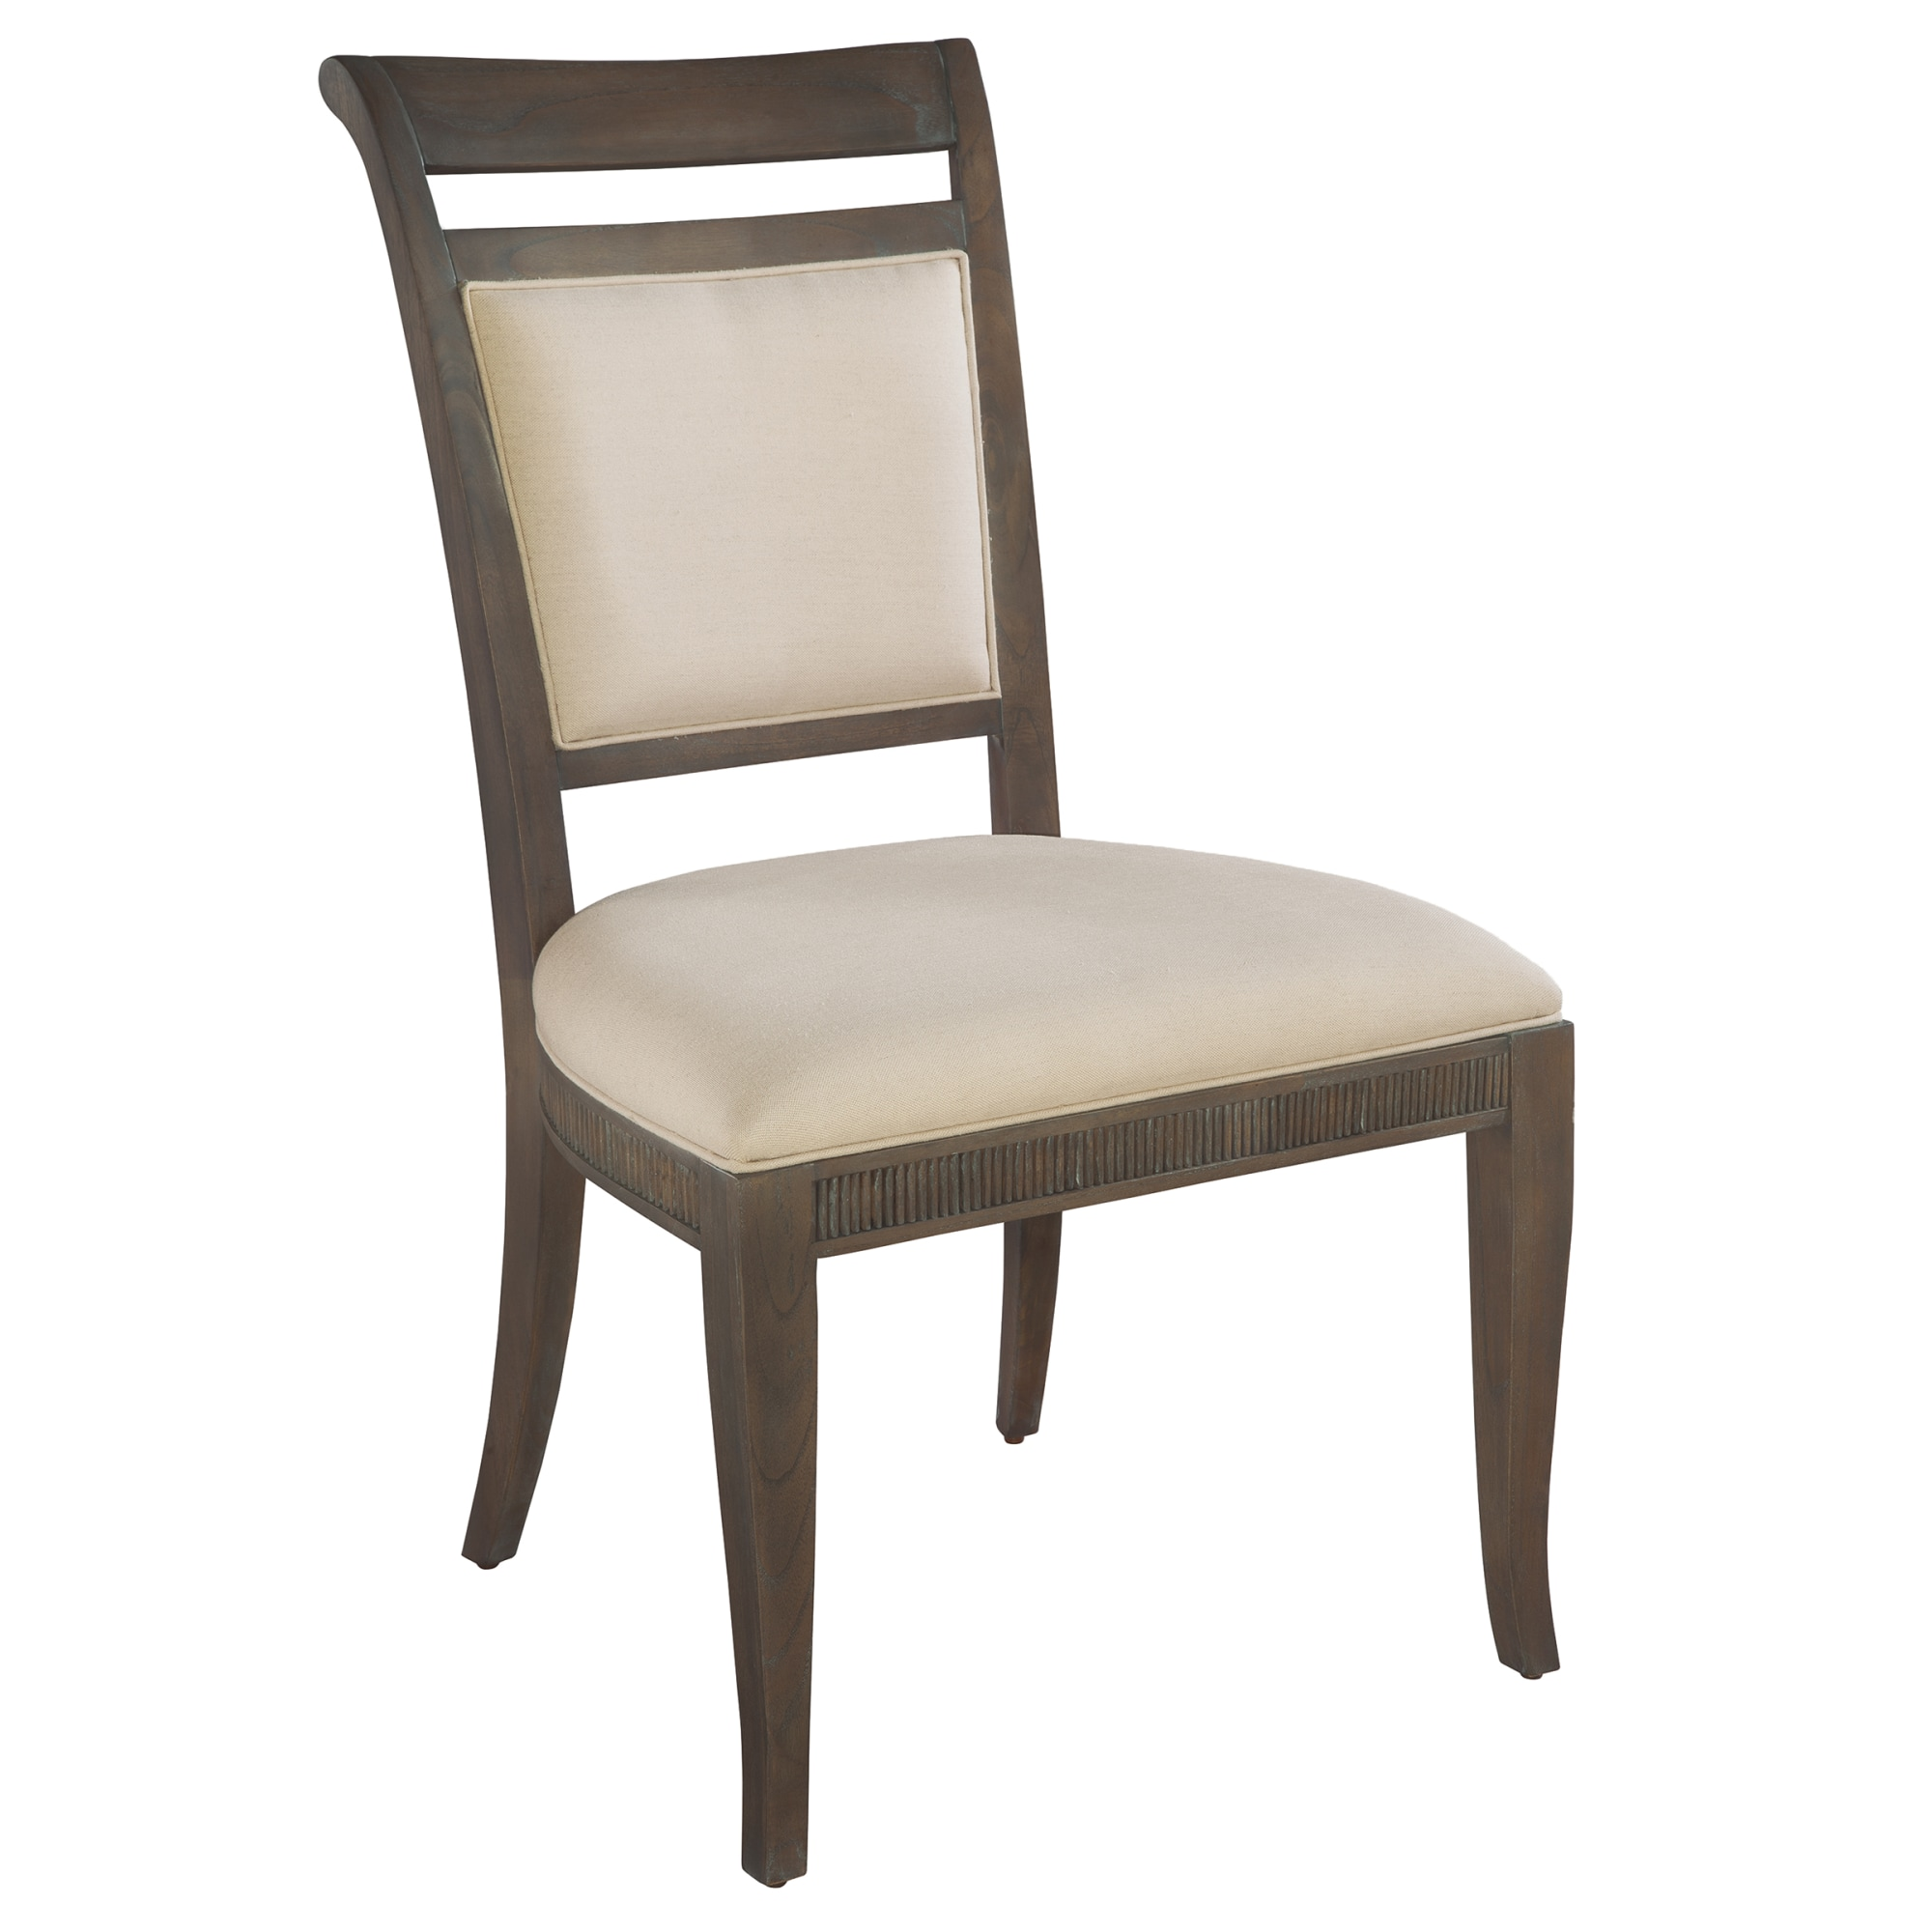 Image for 952222SU Urban Retreat Upholstered Side Chair from Hekman Official Website